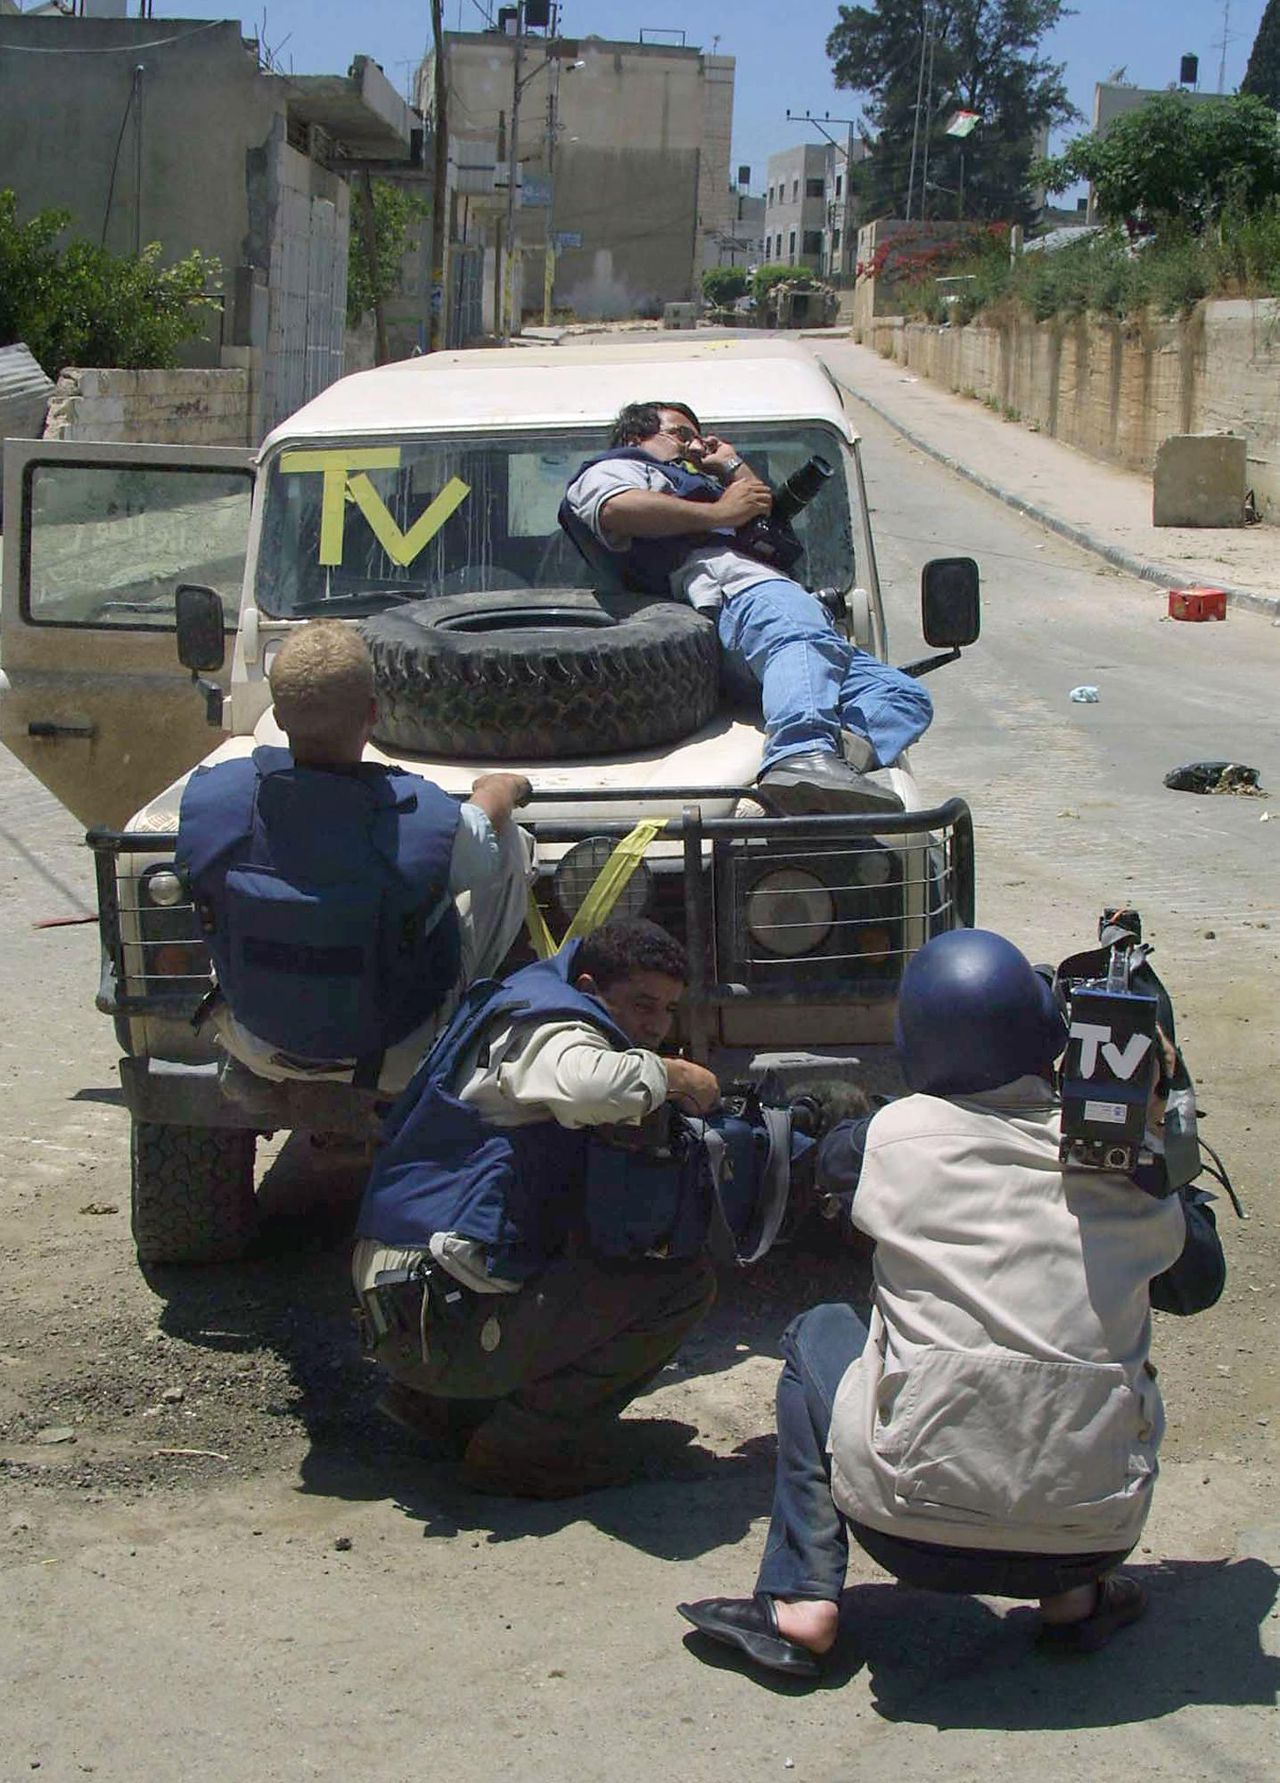 Buitenlandse en Palestijnse journalisten zoeken dekking voor Israëlisch vuur in Tulkarem in mei 2002. Foto AFP/Jaafar Ashtiyeh Foreign and local Palestinian journalists take cover behind an armored vehicle as Israeli troops fire towards them from an armored personnel carrier (background R) down a street in the town of Tulkarem 25 May 2002. The Israeli army continued raids in the autonomous Palestinian area of the West Bank following a series of suicide bomb attacks earlier in the week. Palestinian security sources said that Israel has detained about 100 Palestinians in the incursion. AFP PHOTO/Jaafar ASHTIYEH